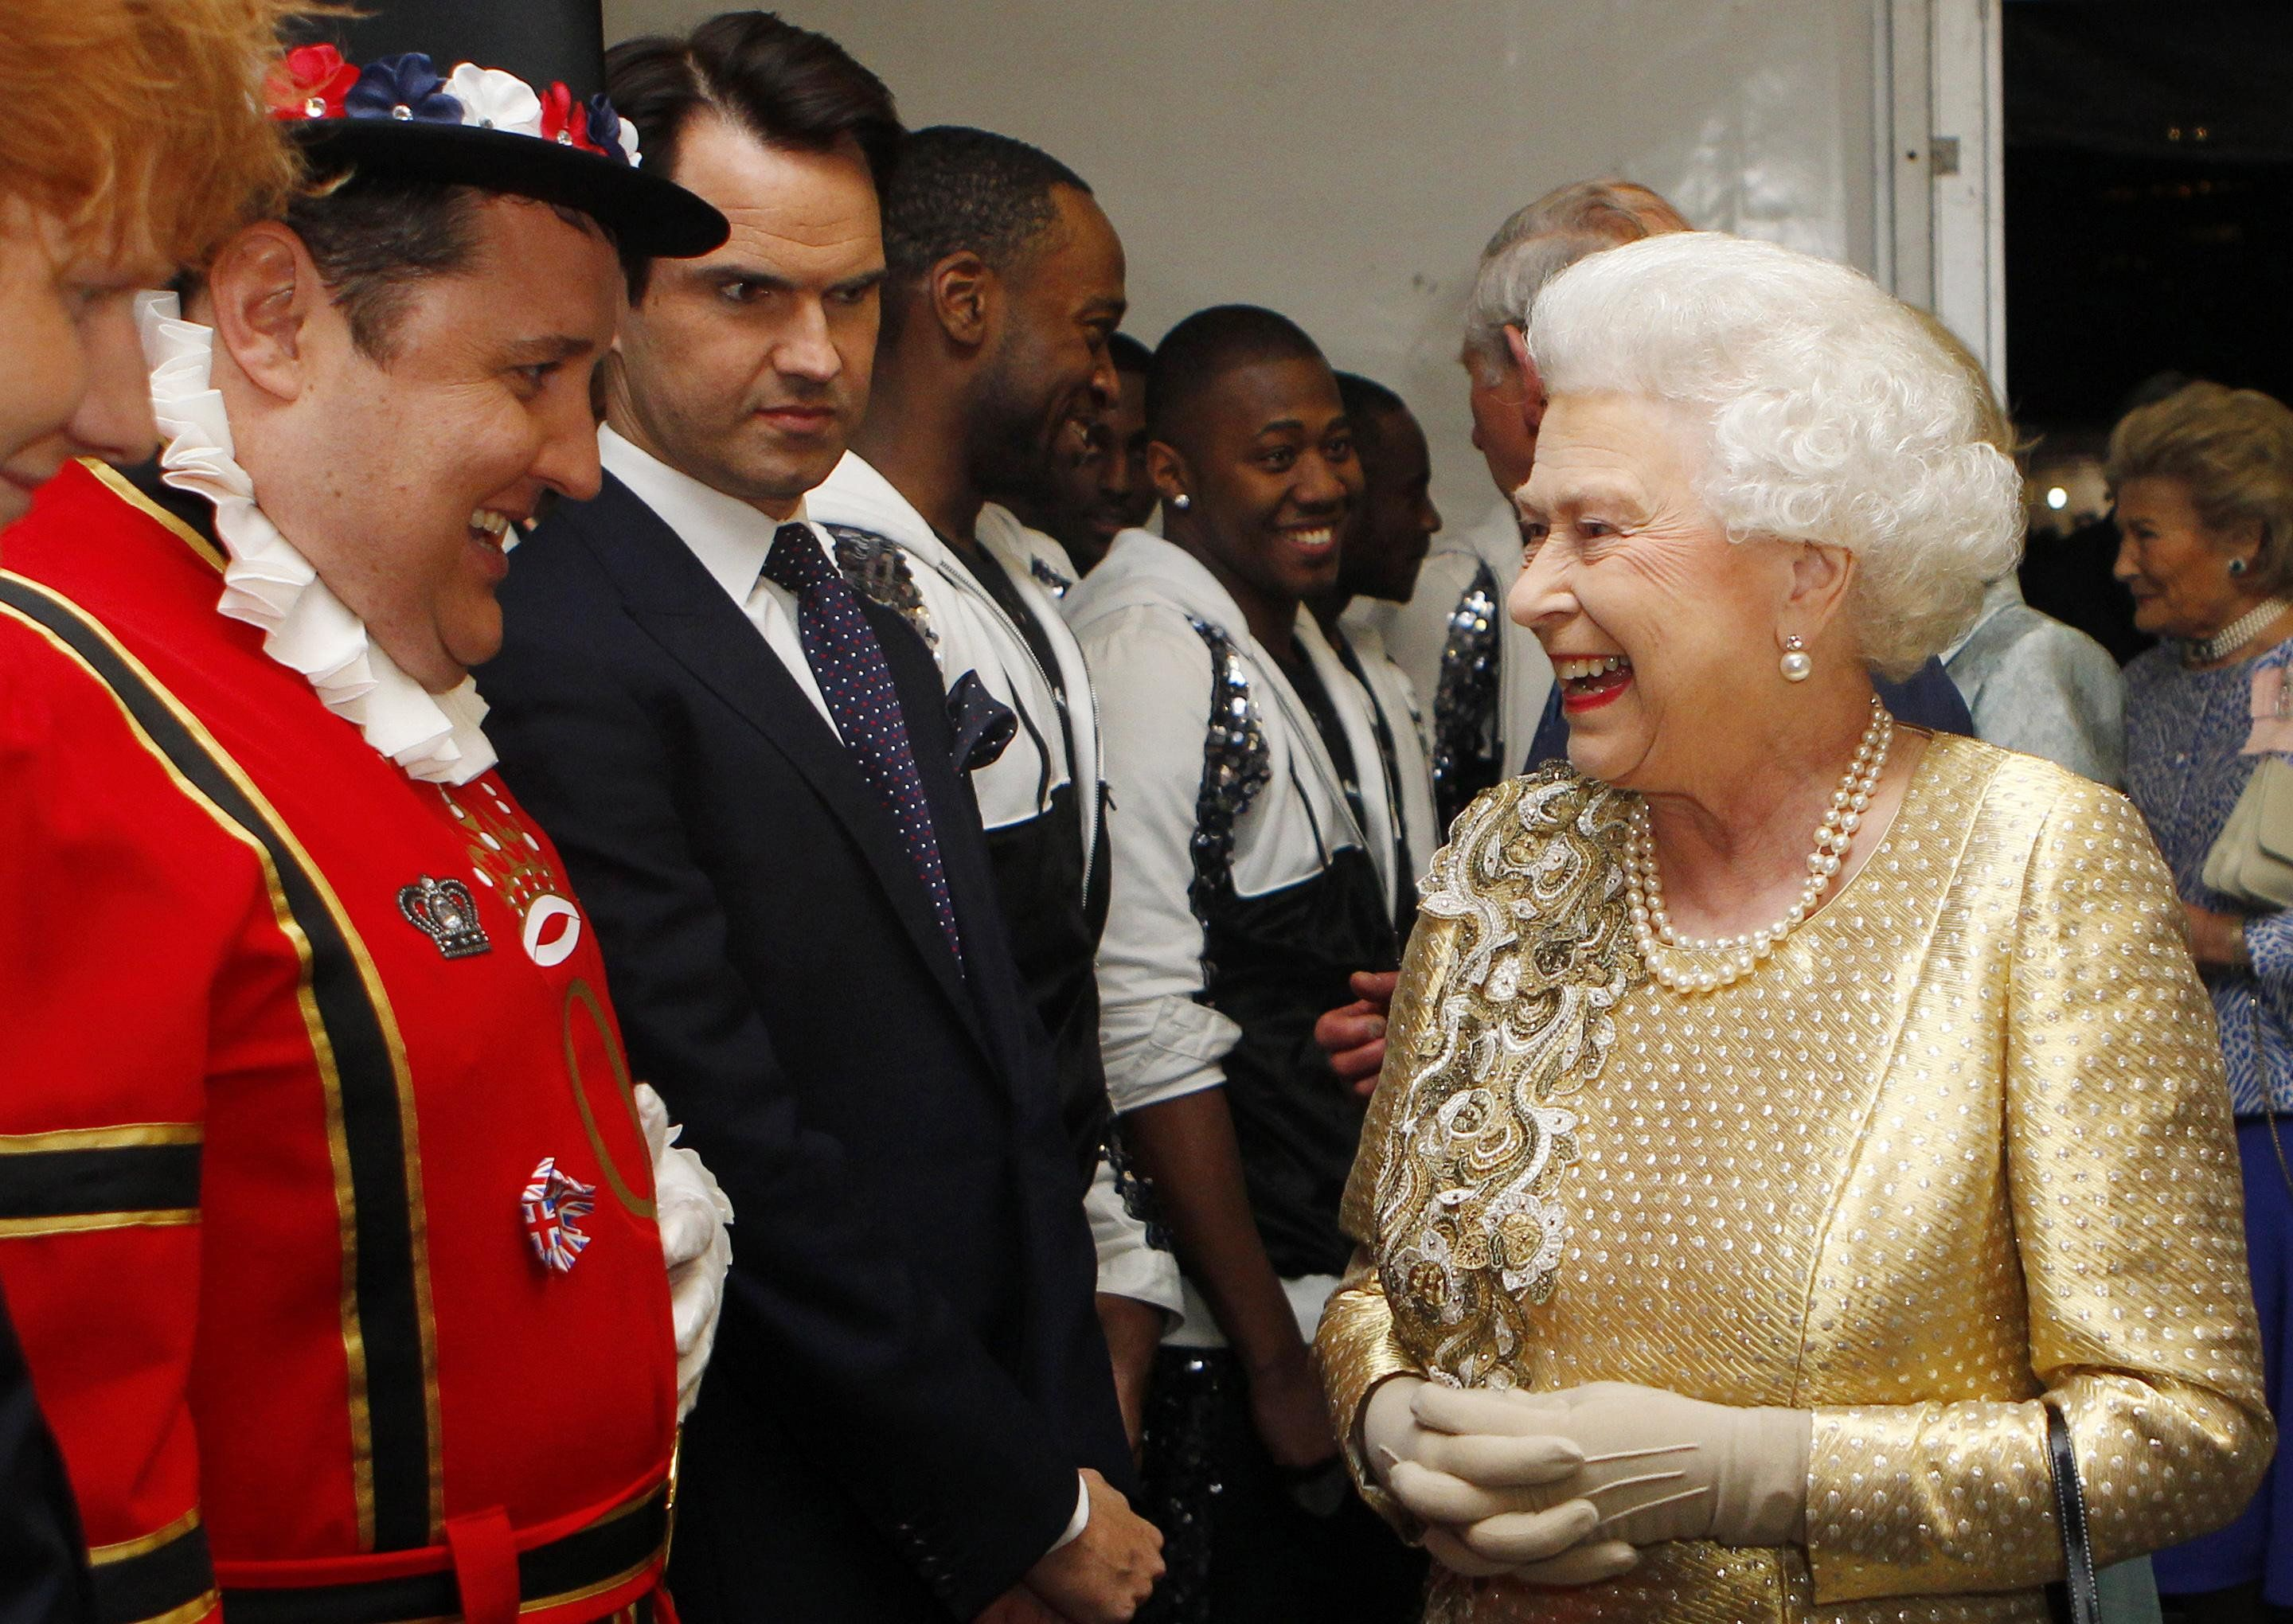 Jimmy Carr Meeting The Queen Gets The Photoshop Battle It